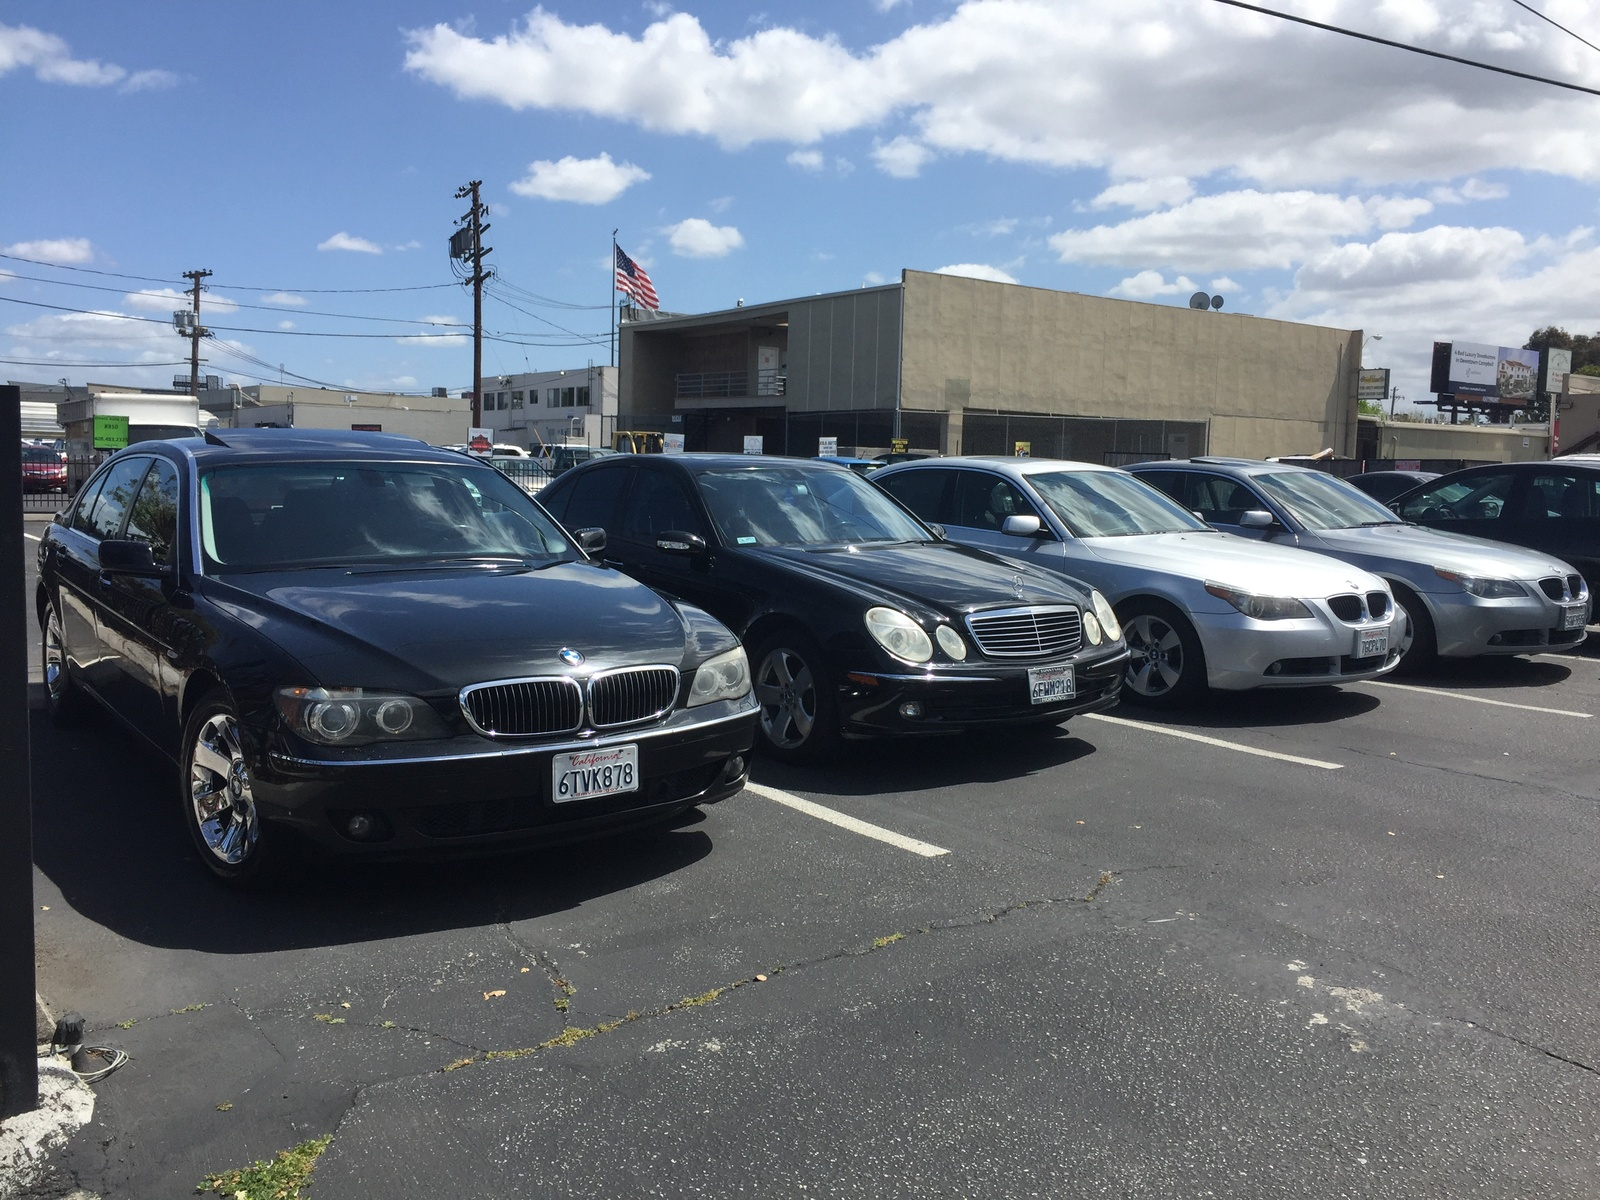 Stevens Creek Lexus Used Cars >> Stevens Creek Toyota Used Cars In San Jose Ca With | Autos Post